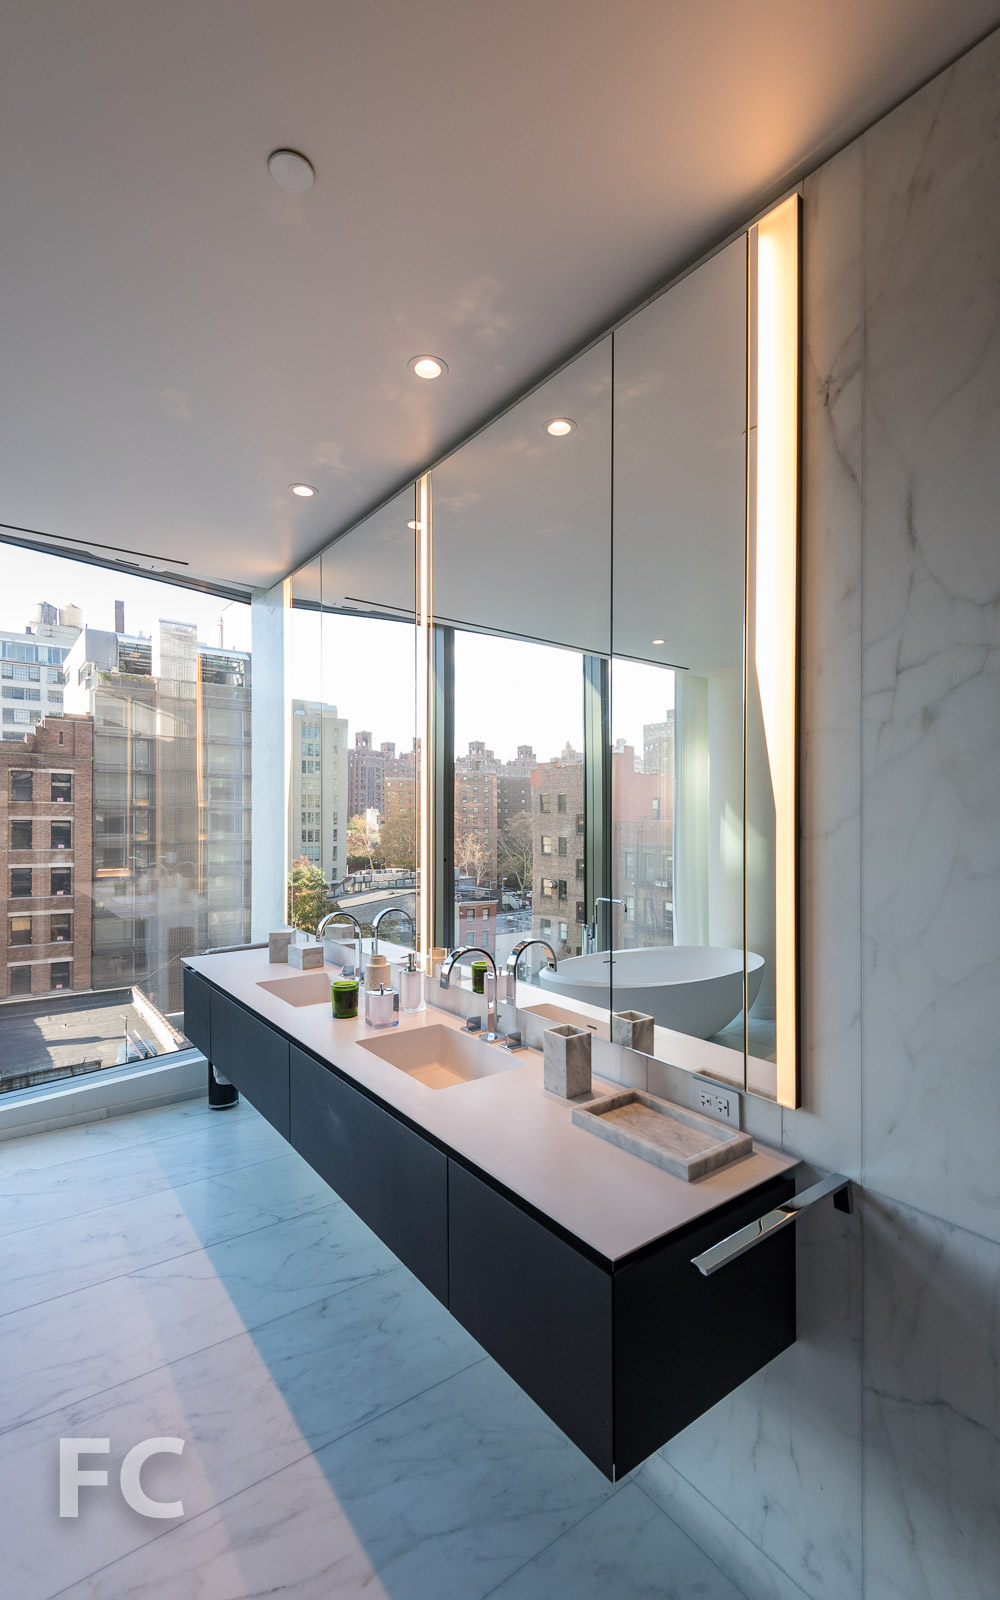 Vanity in the master bathroom.